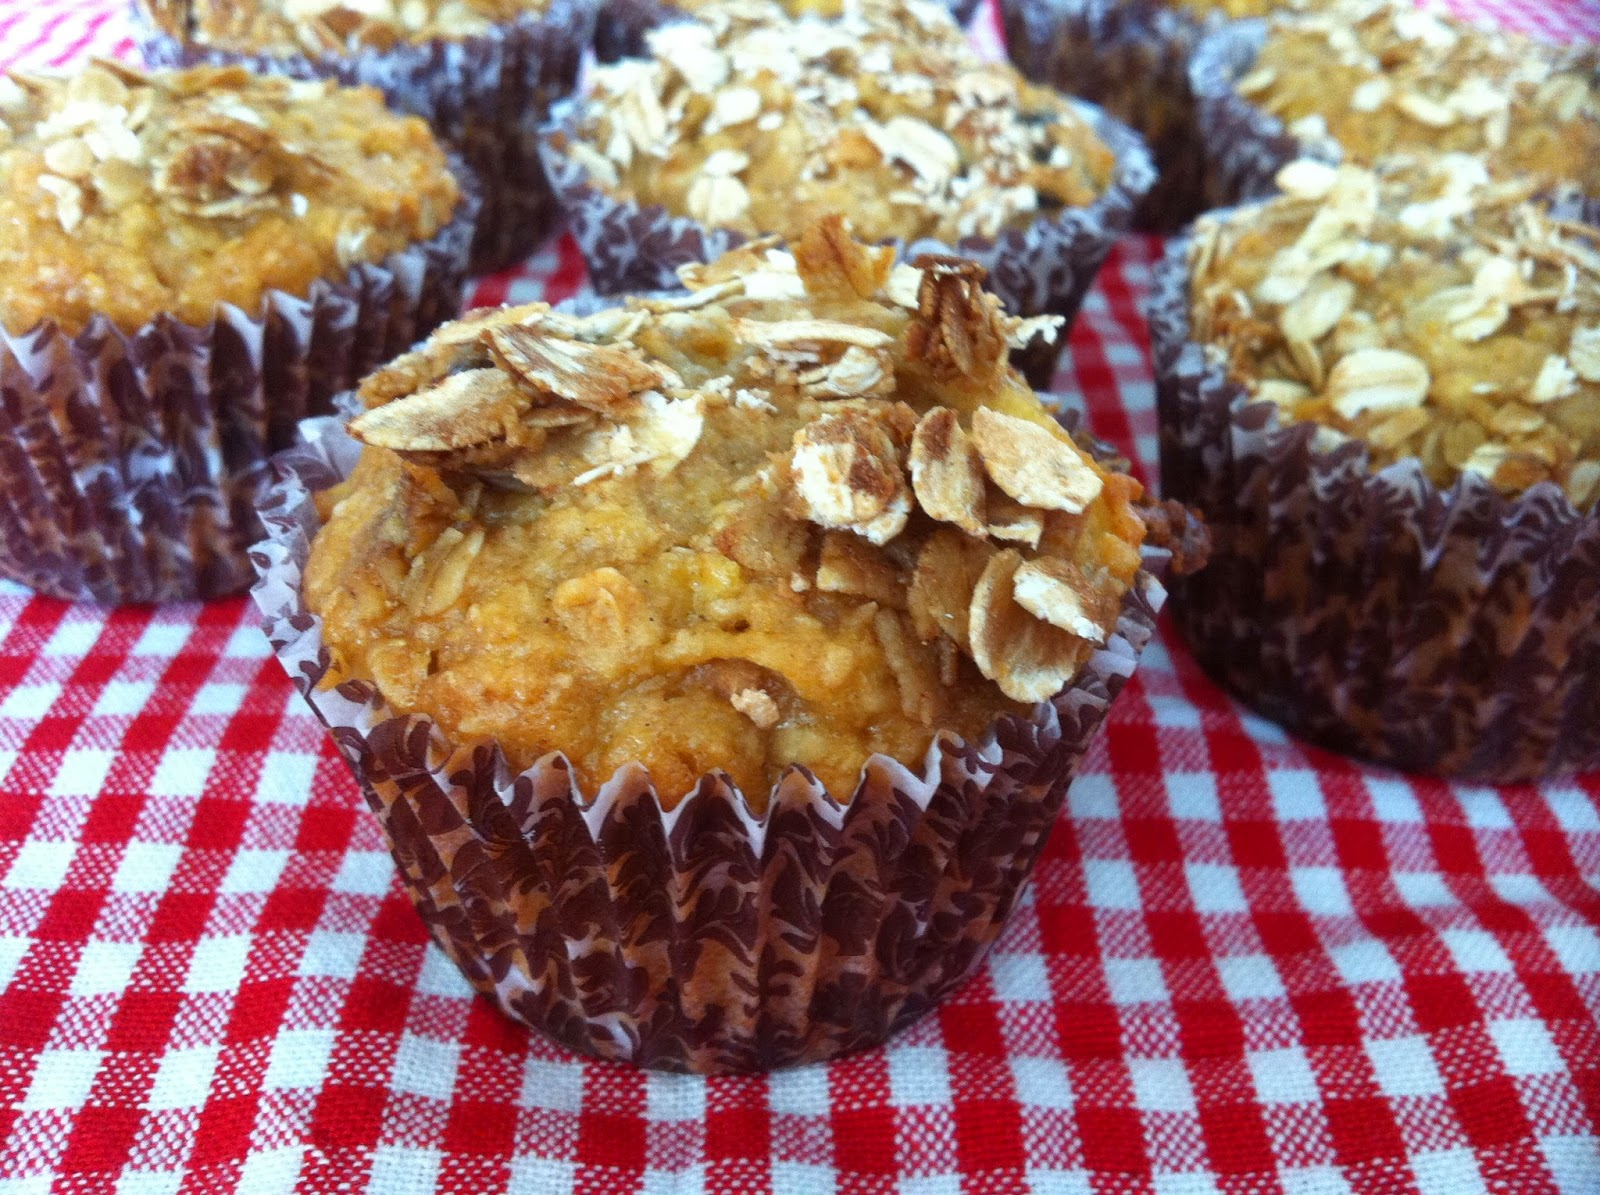 WWDH - Apple Date and Cinnamon Muffins with Maple Oats | Laws of the ...